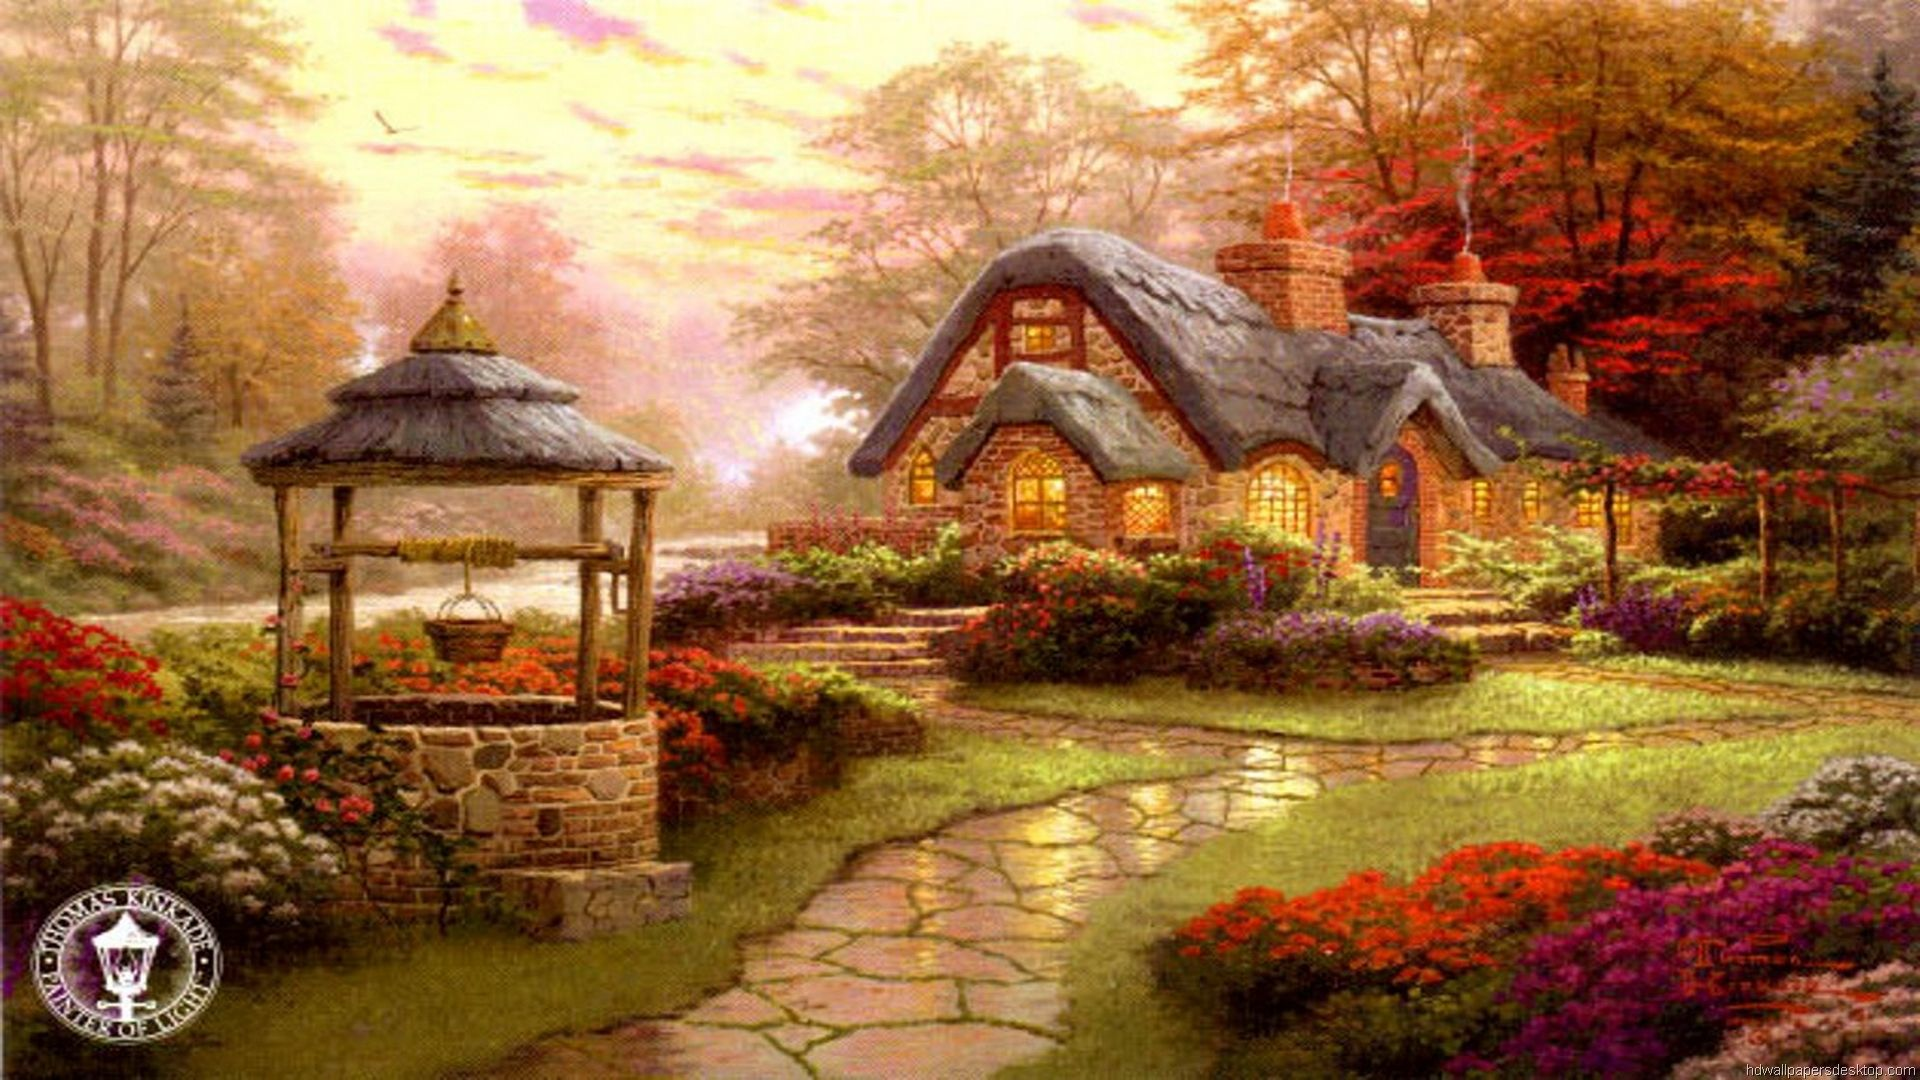 Thomas Kinkade Autumn Paintings | Thomas Kinkade Wallpaper, Paintings, Art, HD, Desktop, 1920x1080